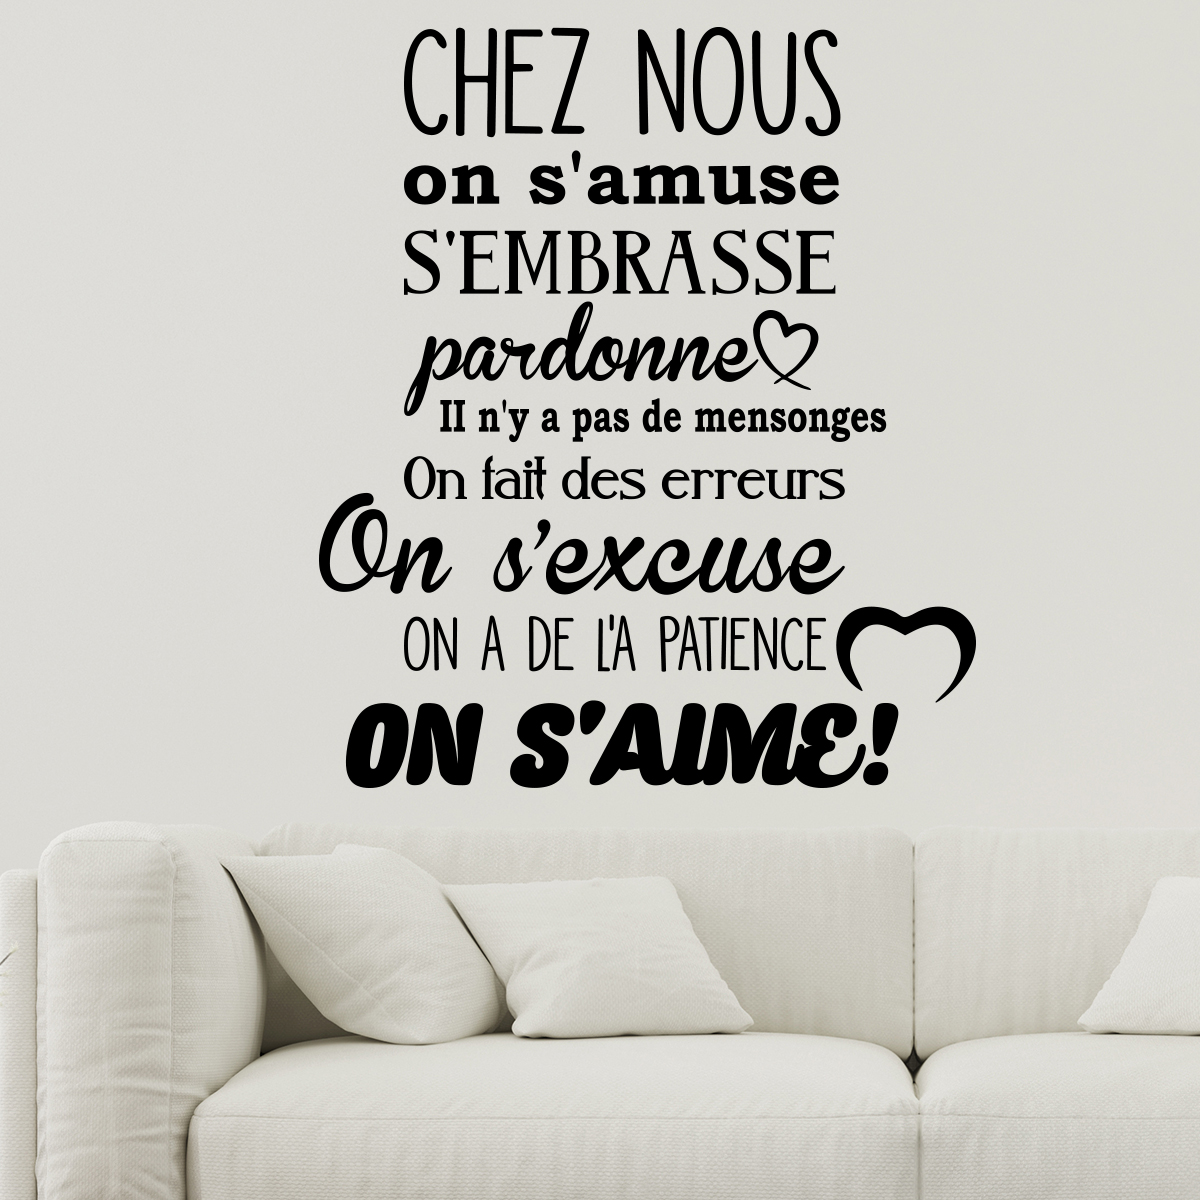 sticker citation chez nous on s 39 amuse s 39 embrasse stickers citations fran ais ambiance sticker. Black Bedroom Furniture Sets. Home Design Ideas